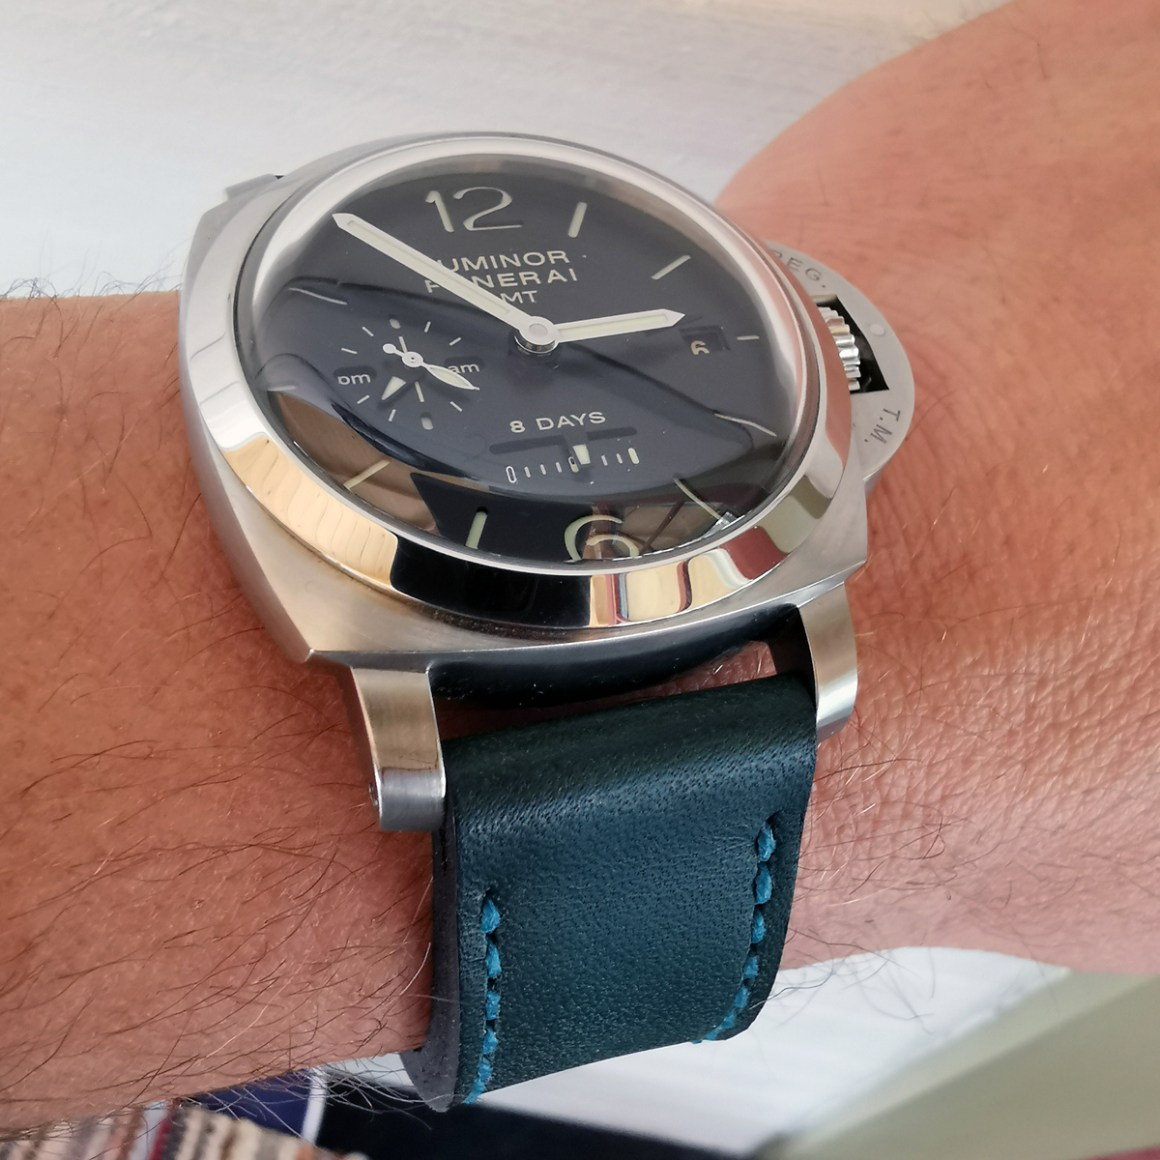 Panerai 233 on Aqua leather with teal stitching. © Peter Cassman